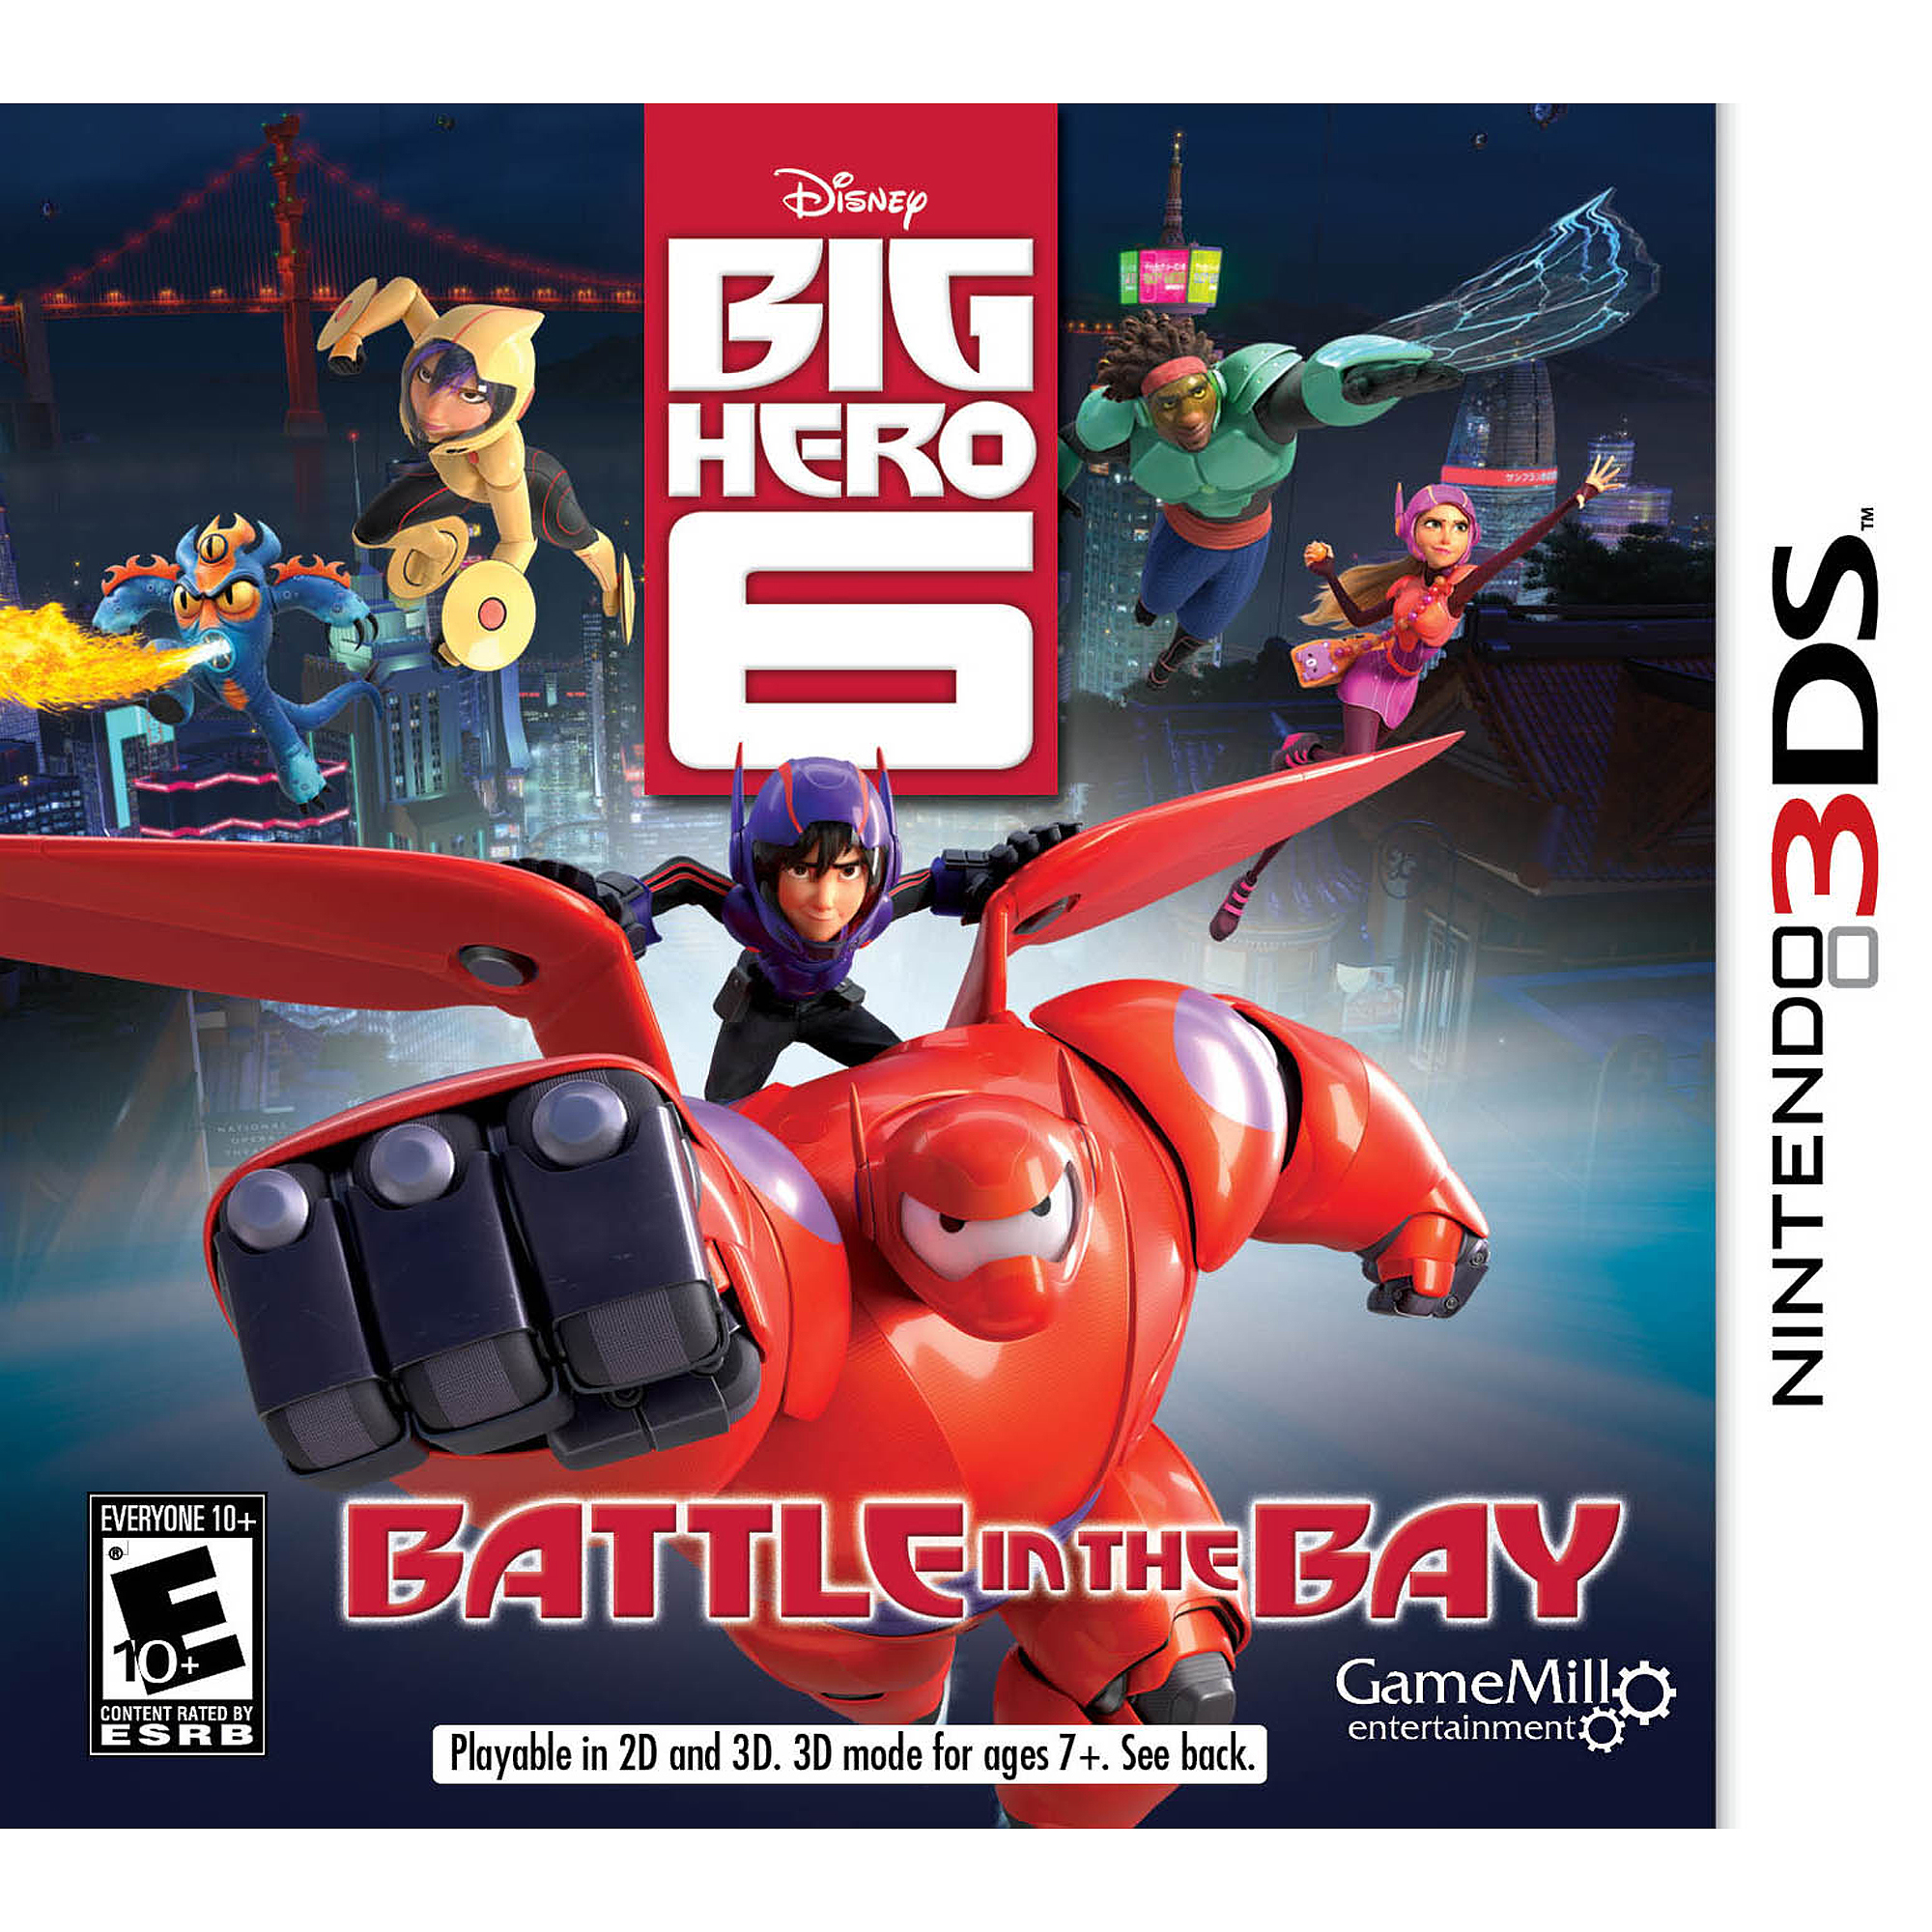 Big Hero 6 (Nintendo 3DS)